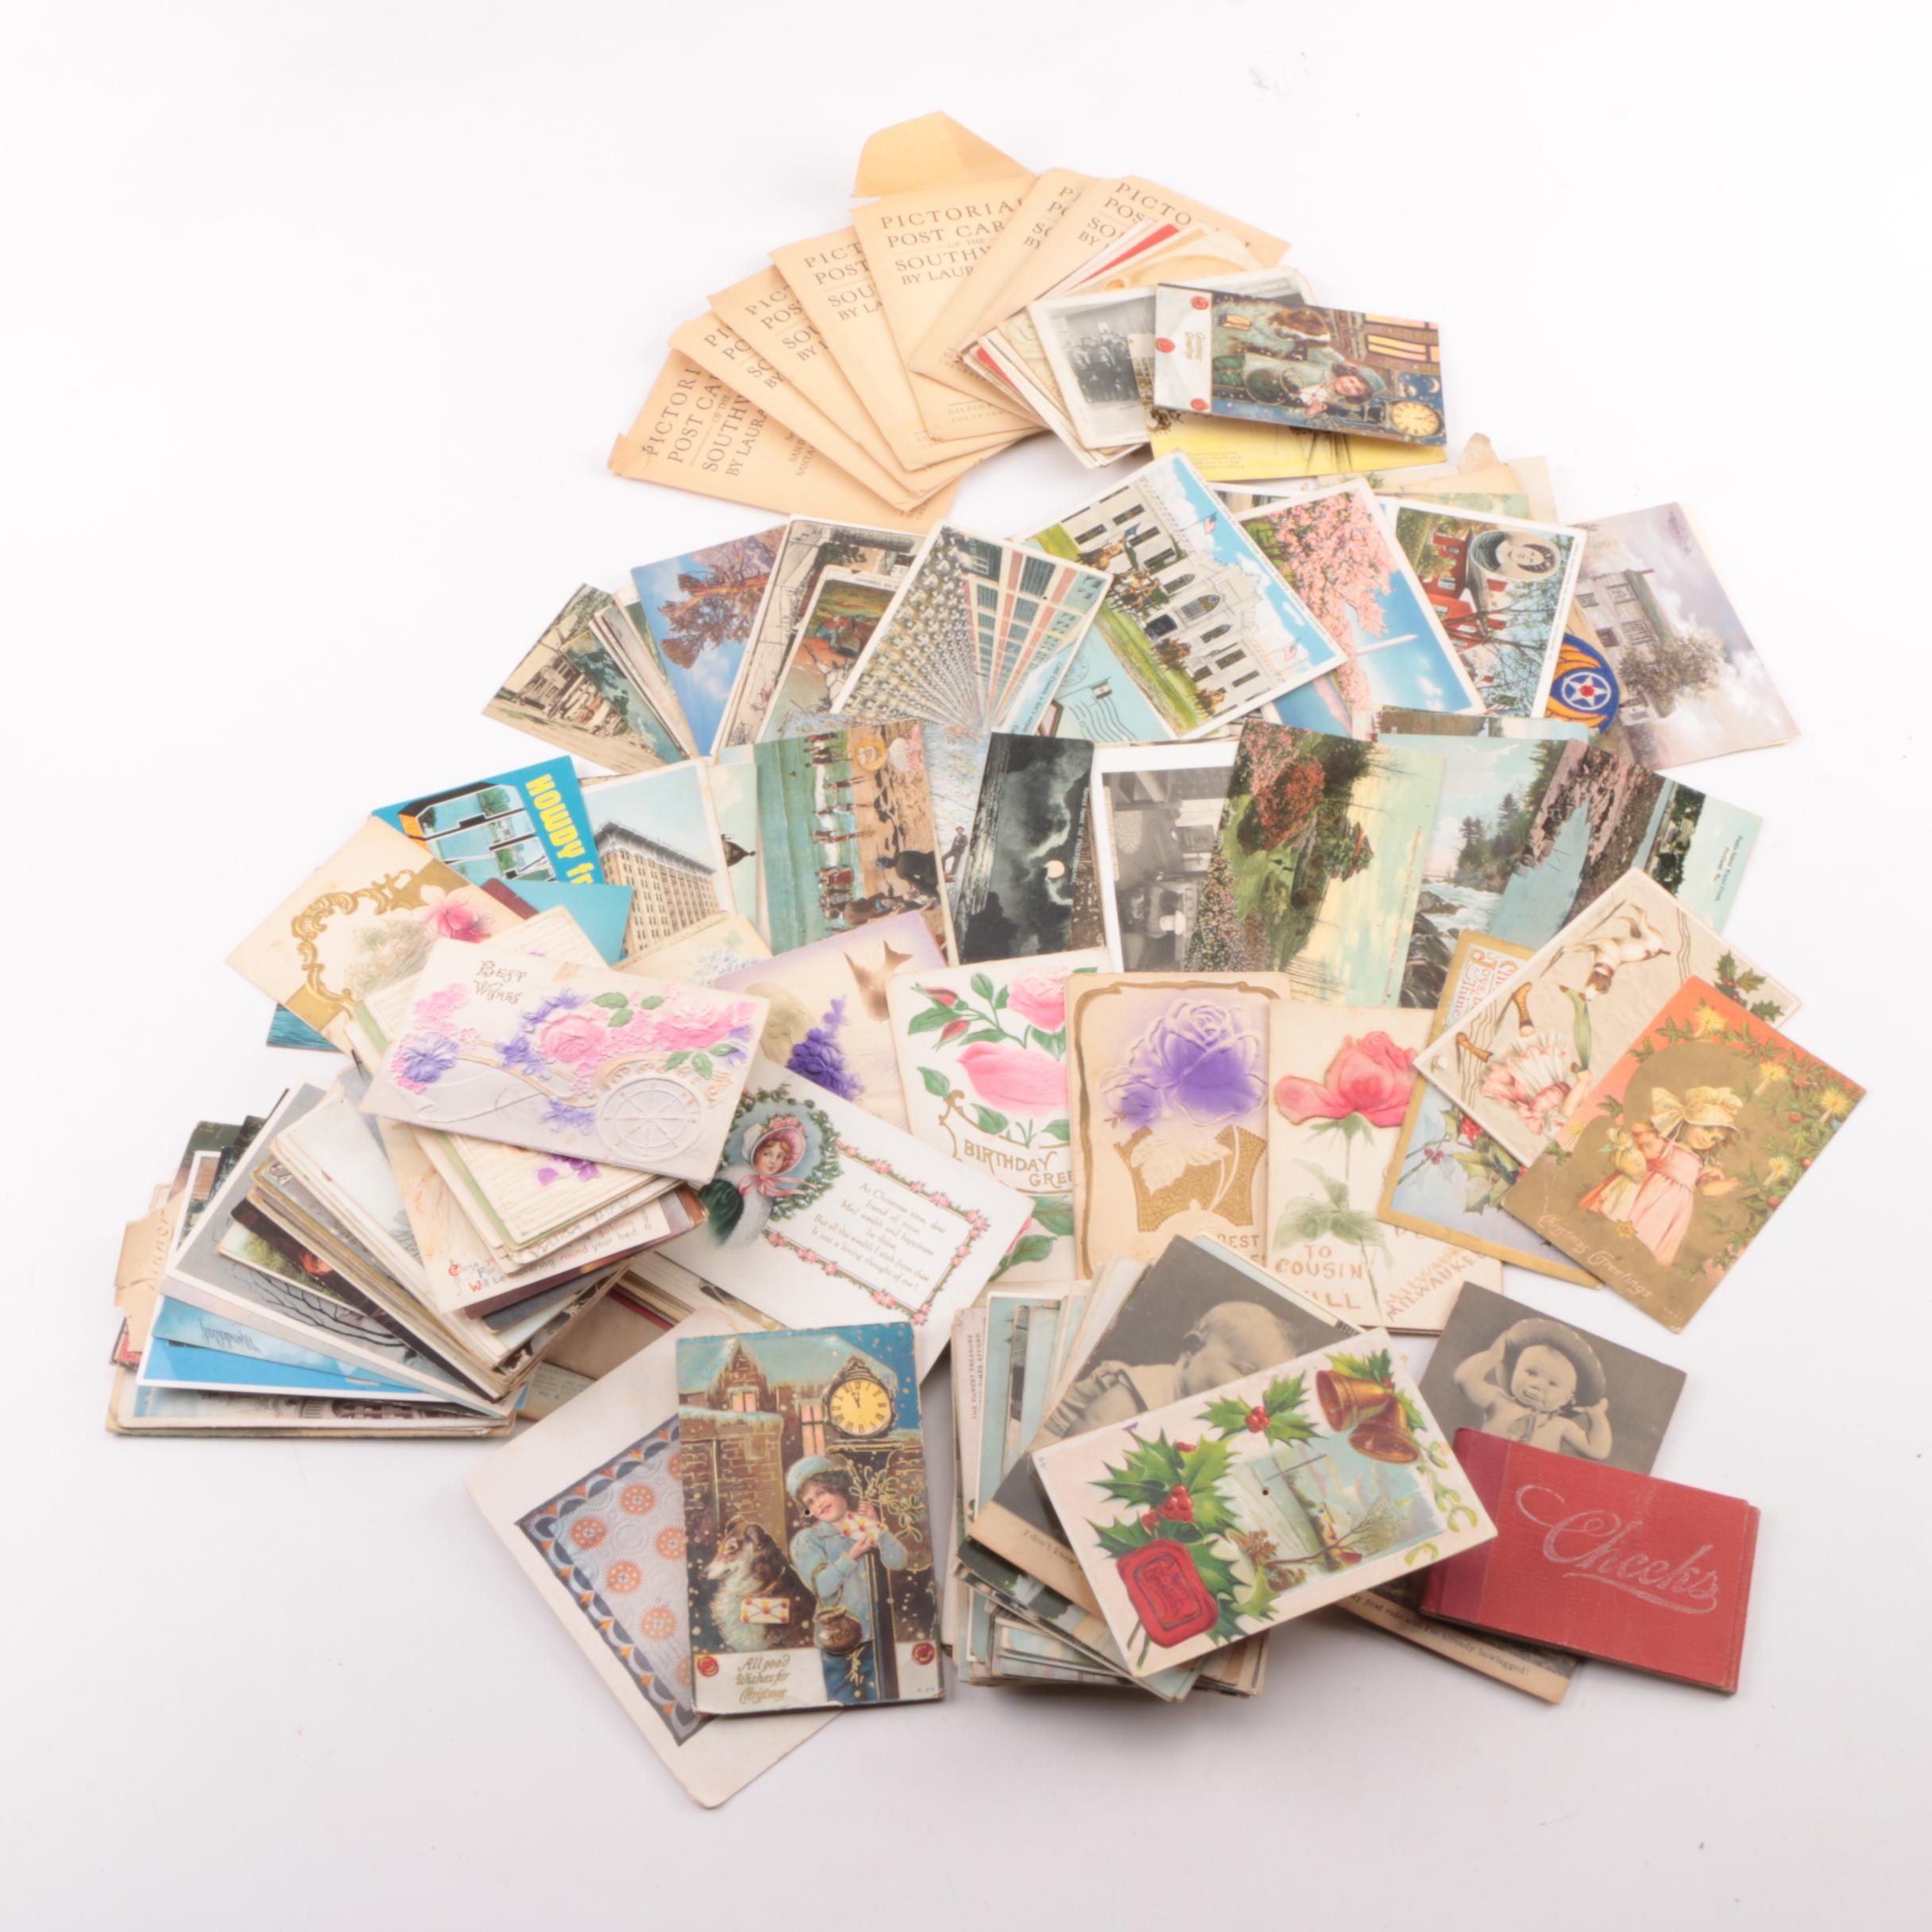 Antique Post Cards with Baseball Cards and Other Ephemera